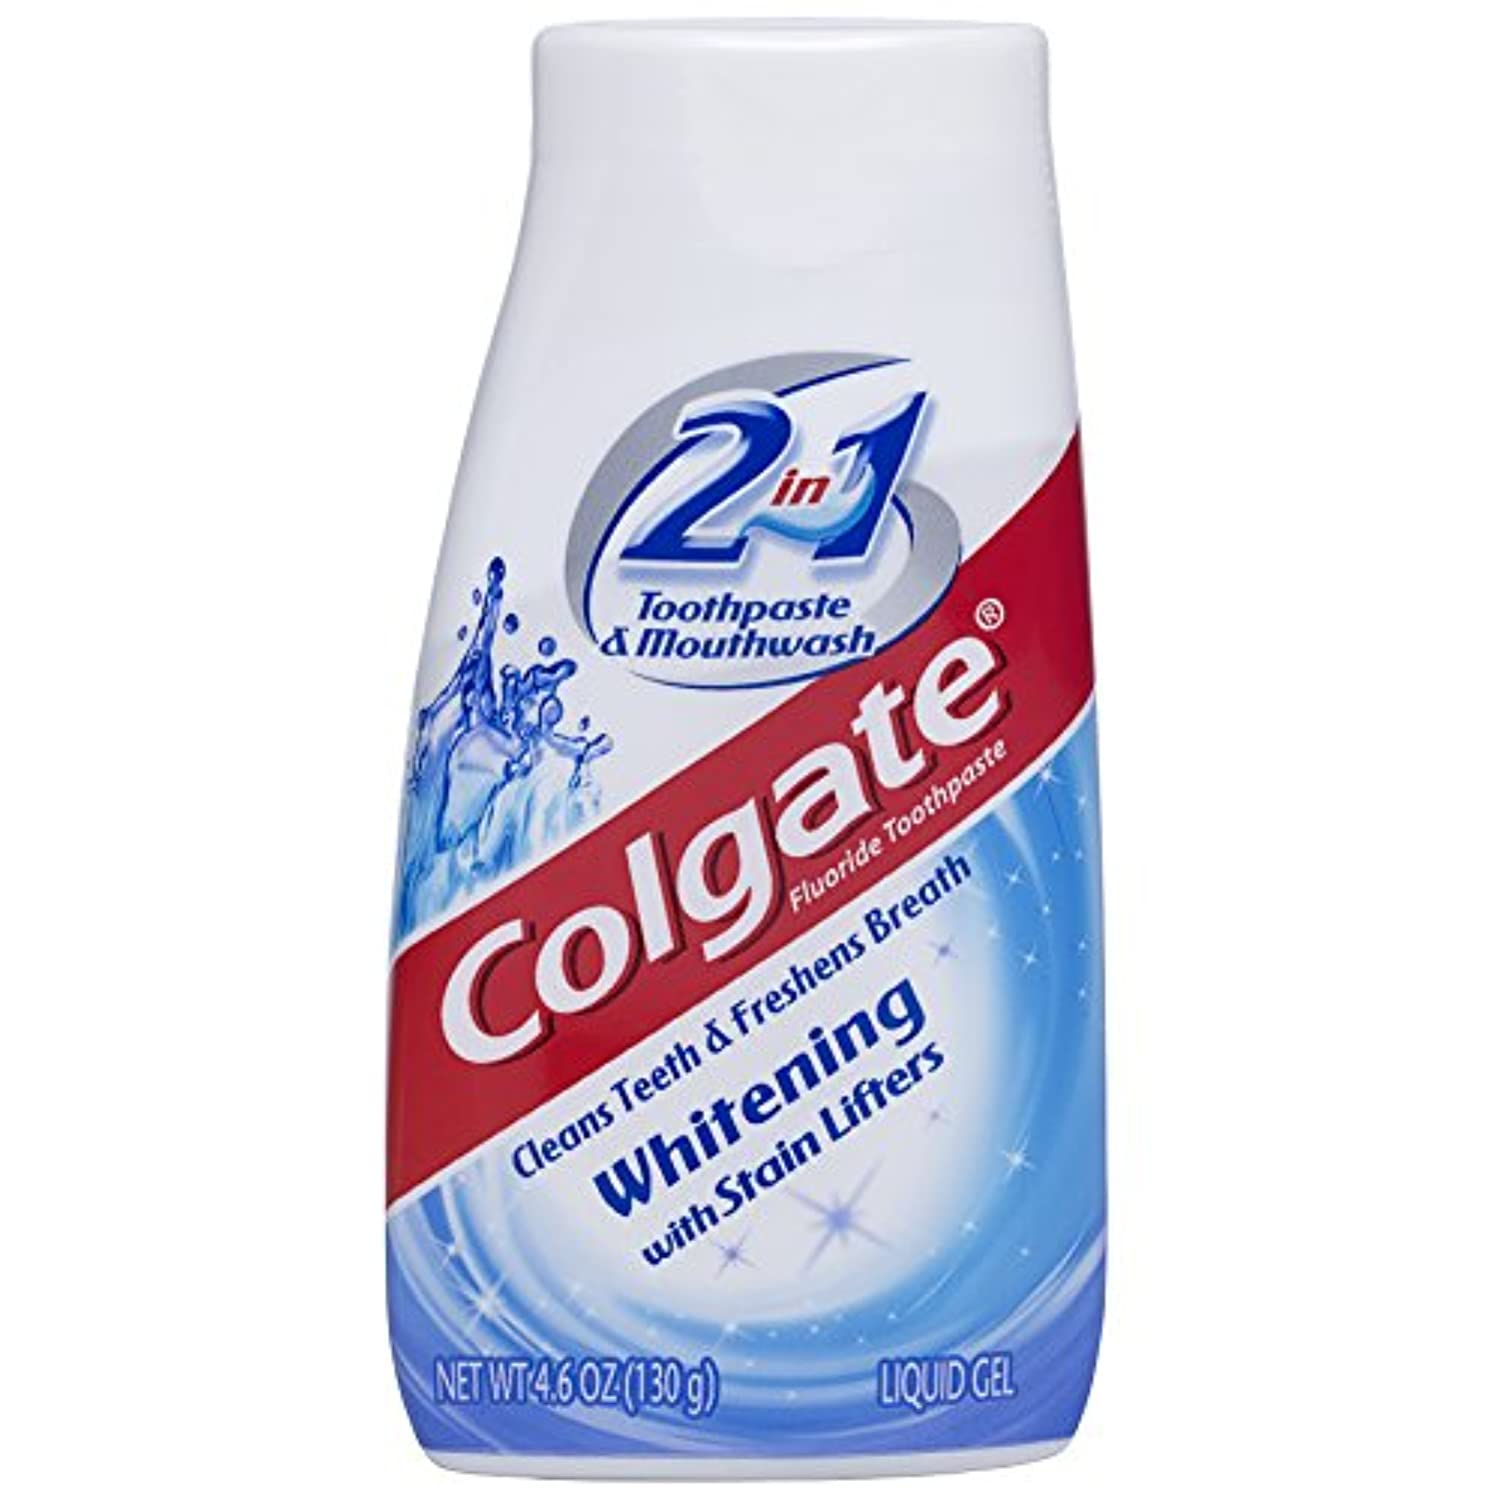 株式会社不従順性交海外直送品Colgate 2 In 1 Toothpaste & Mouthwash Whitening, 4.6 oz by Colgate